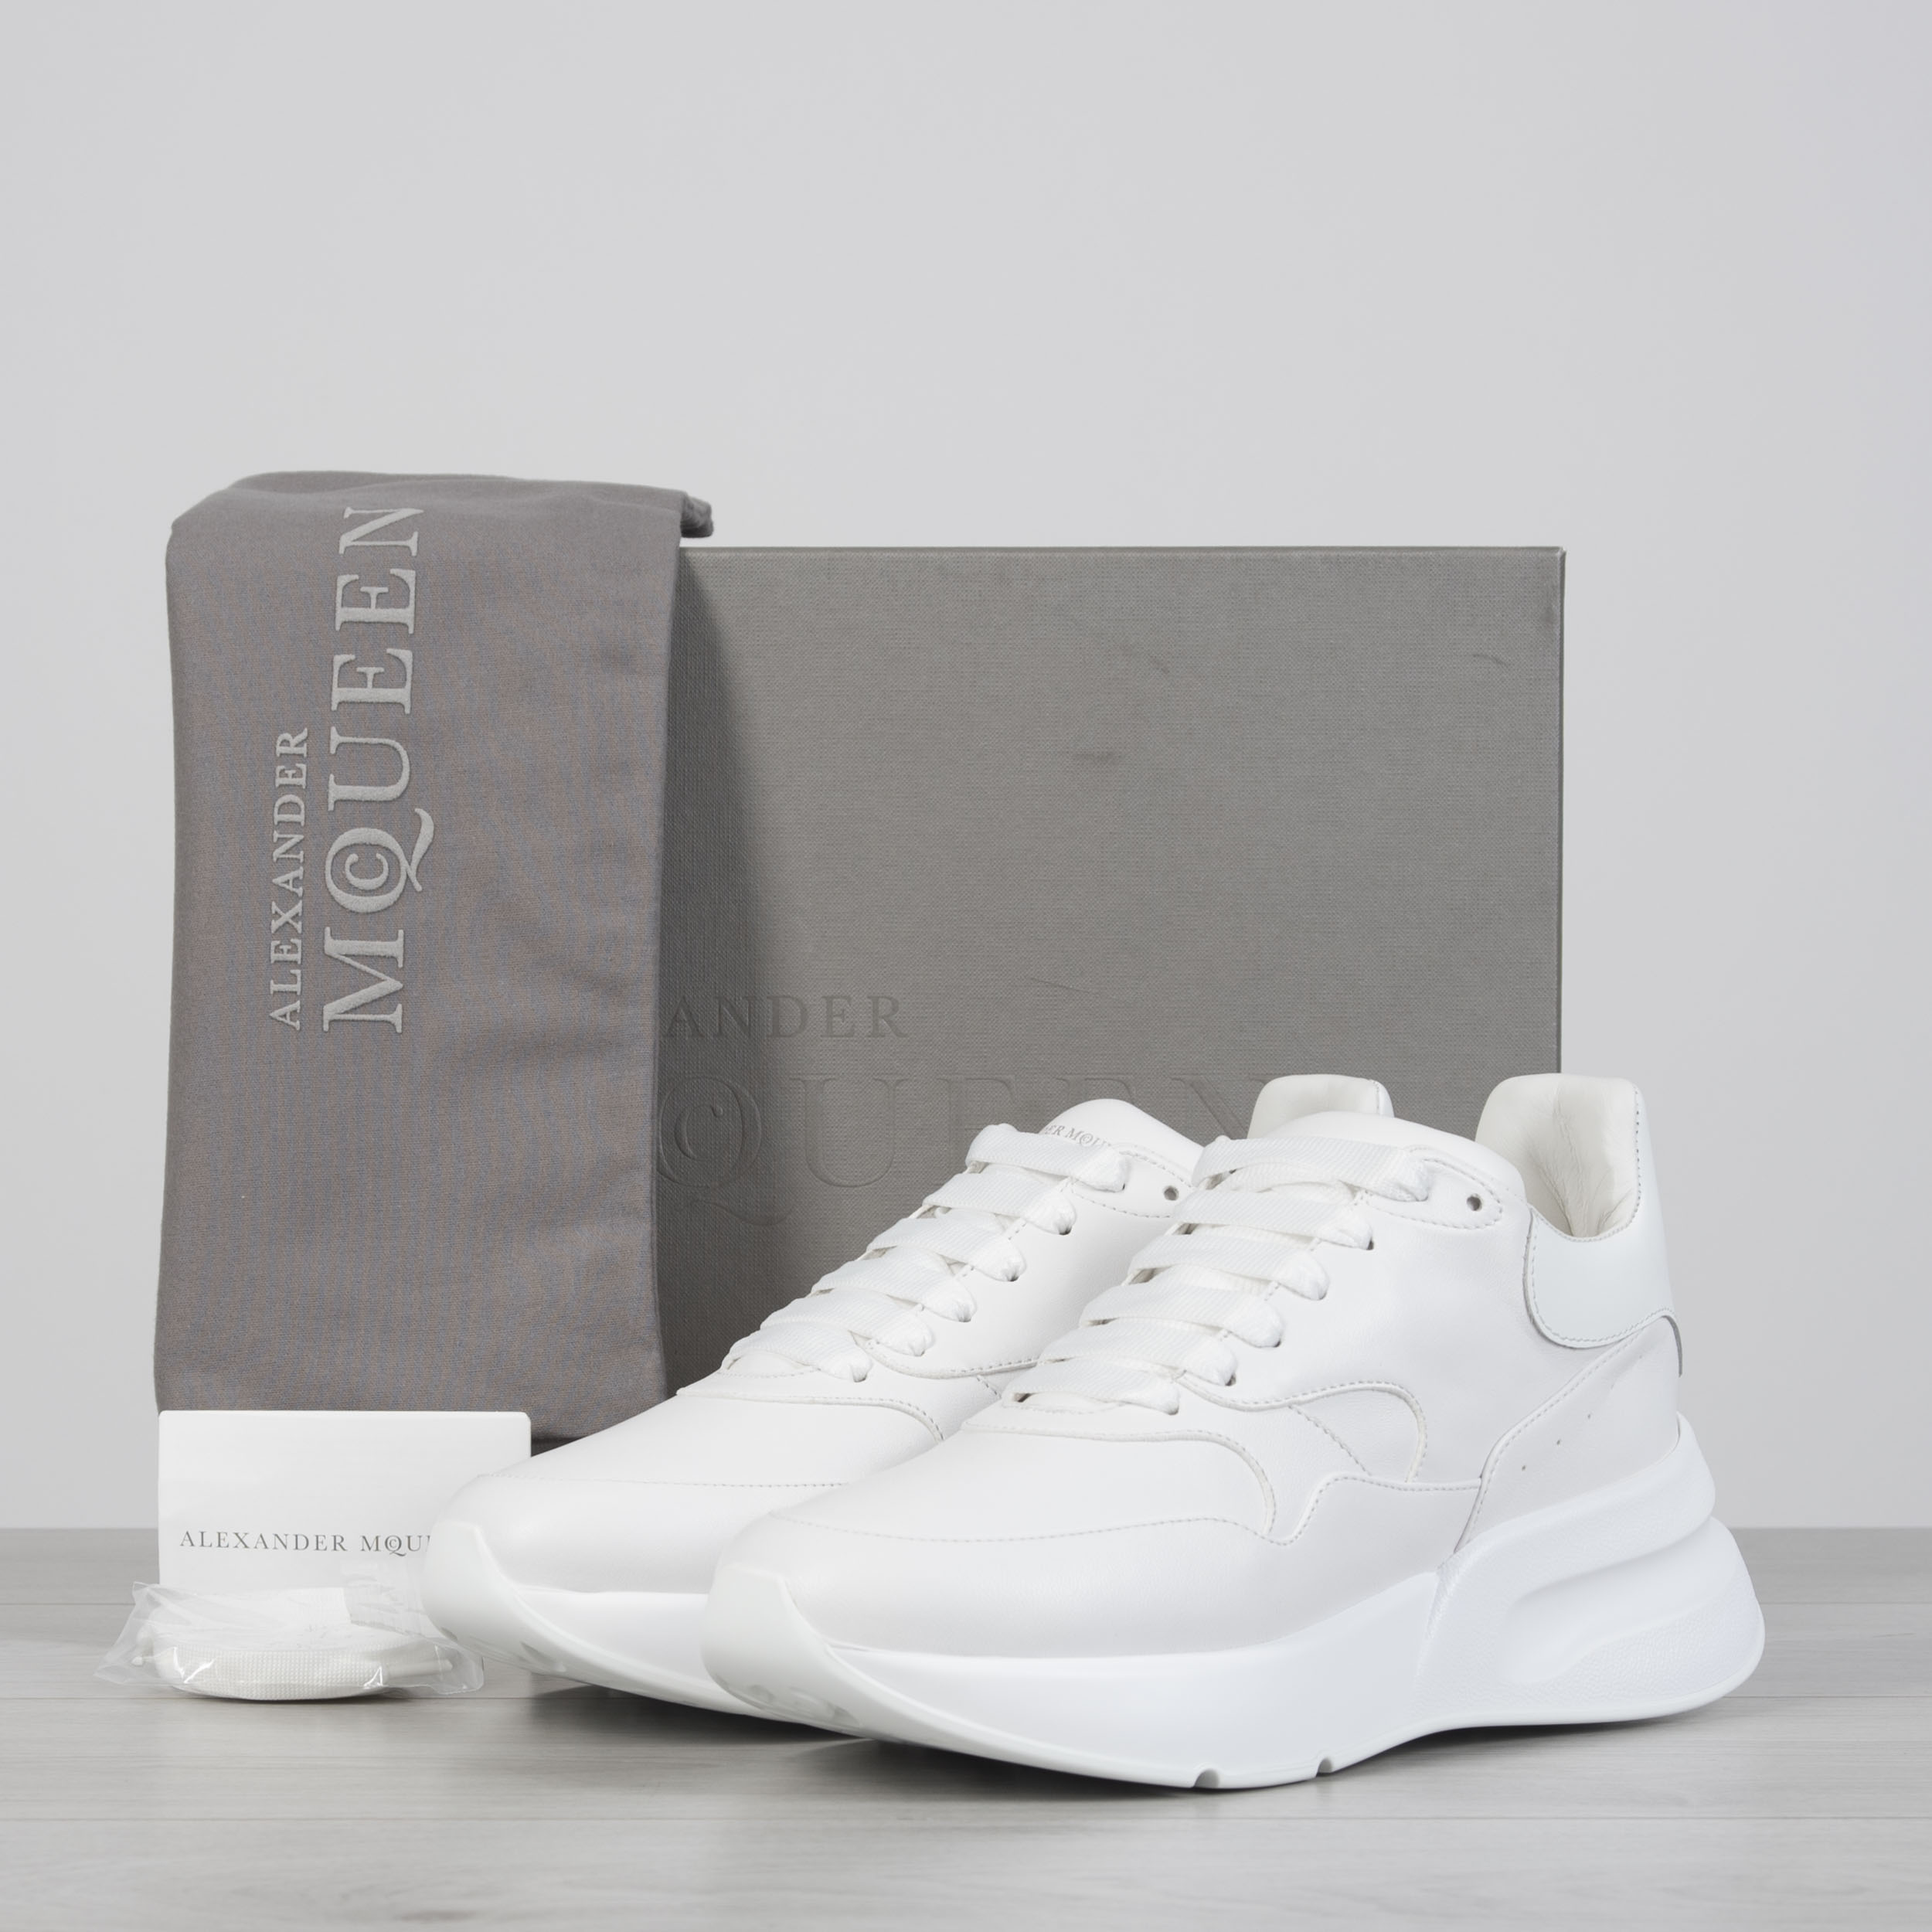 Details about ALEXANDER MCQUEEN 790$ Oversized Runner Sneakers In Optic  White